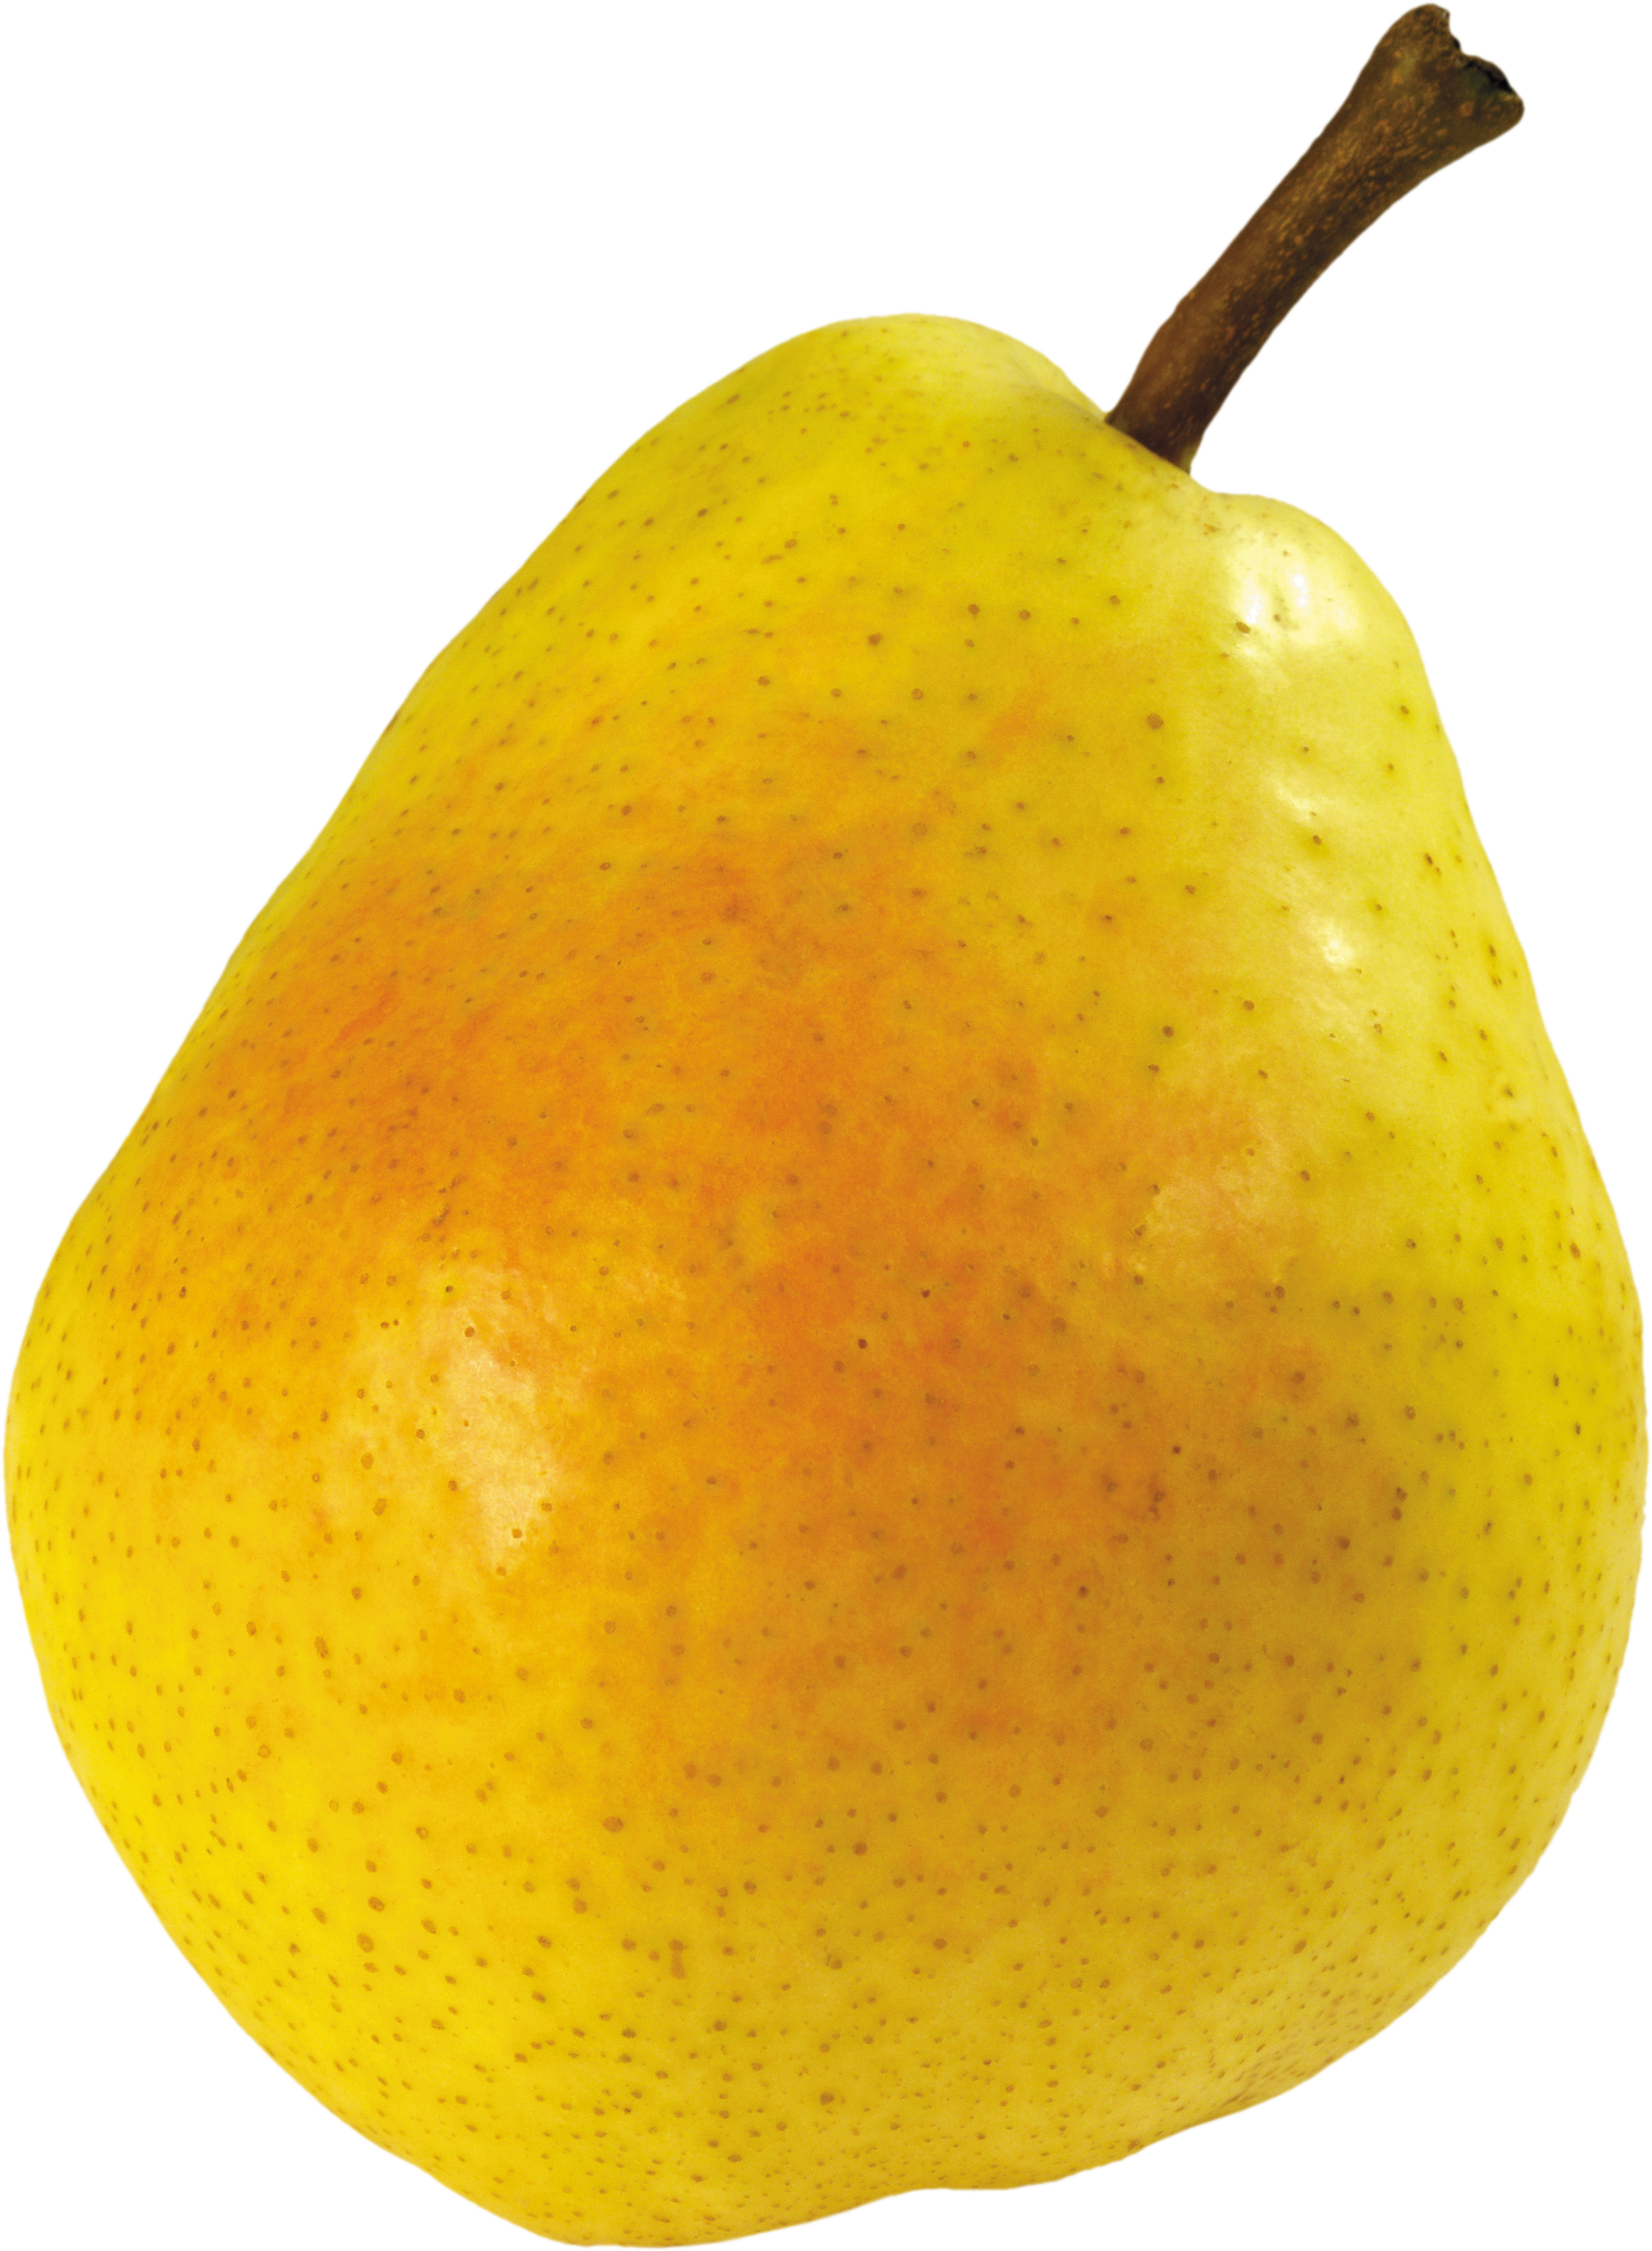 Pear PNG - 8922